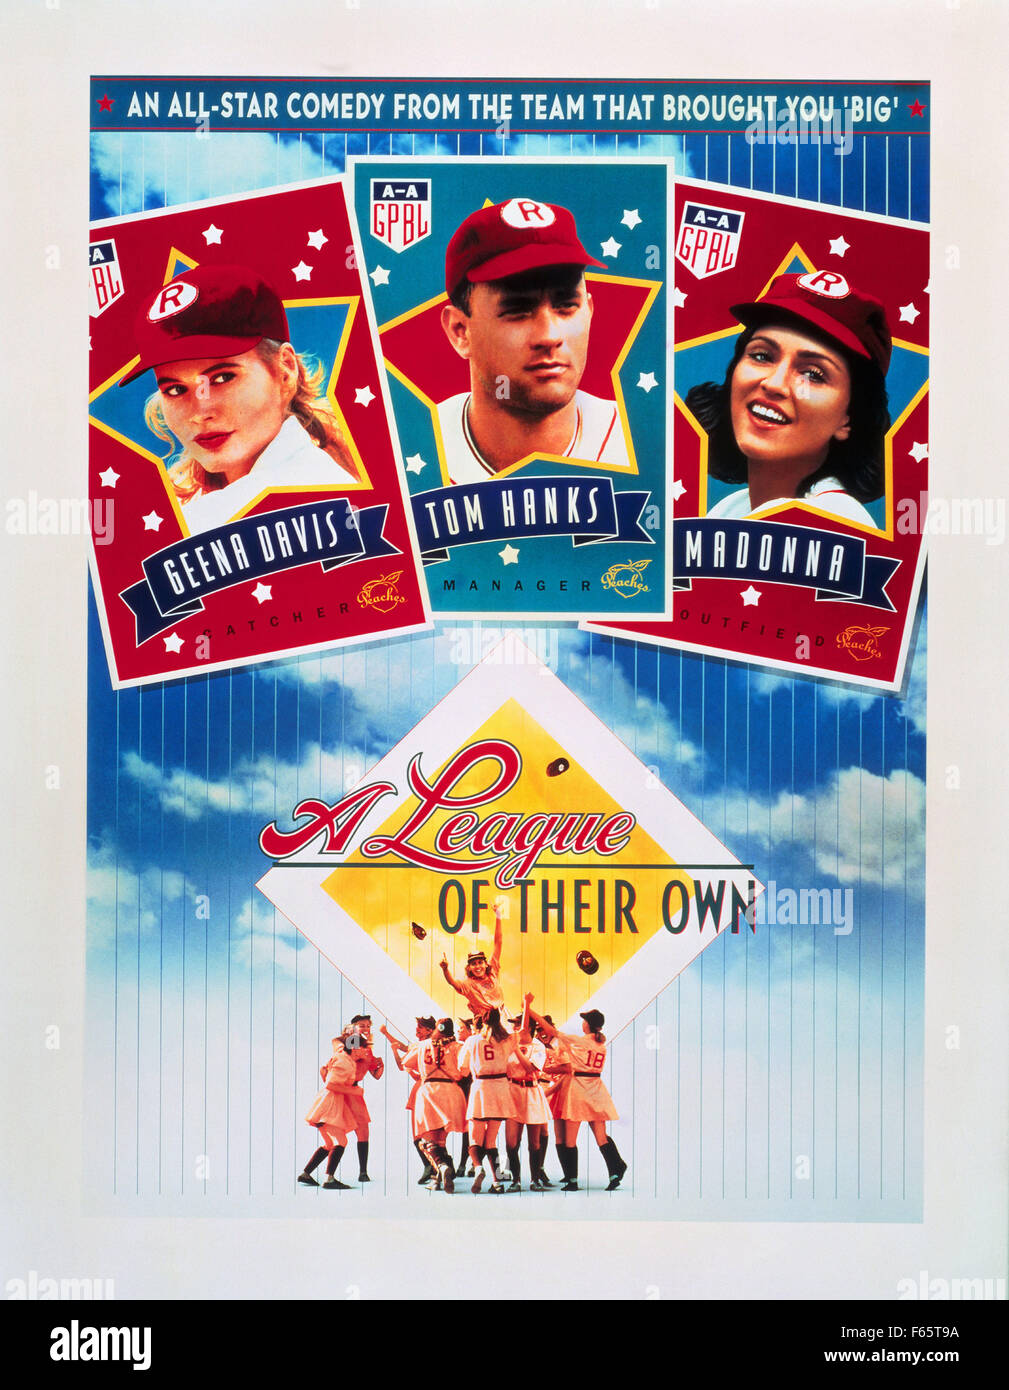 an analysis of women of the mlb in a league of their own by penny marshall And sexual abuse on women during the 1980s in america a movie analysis of a league of their own by penny marshall journalists and bloggers covering nfl, mlb.